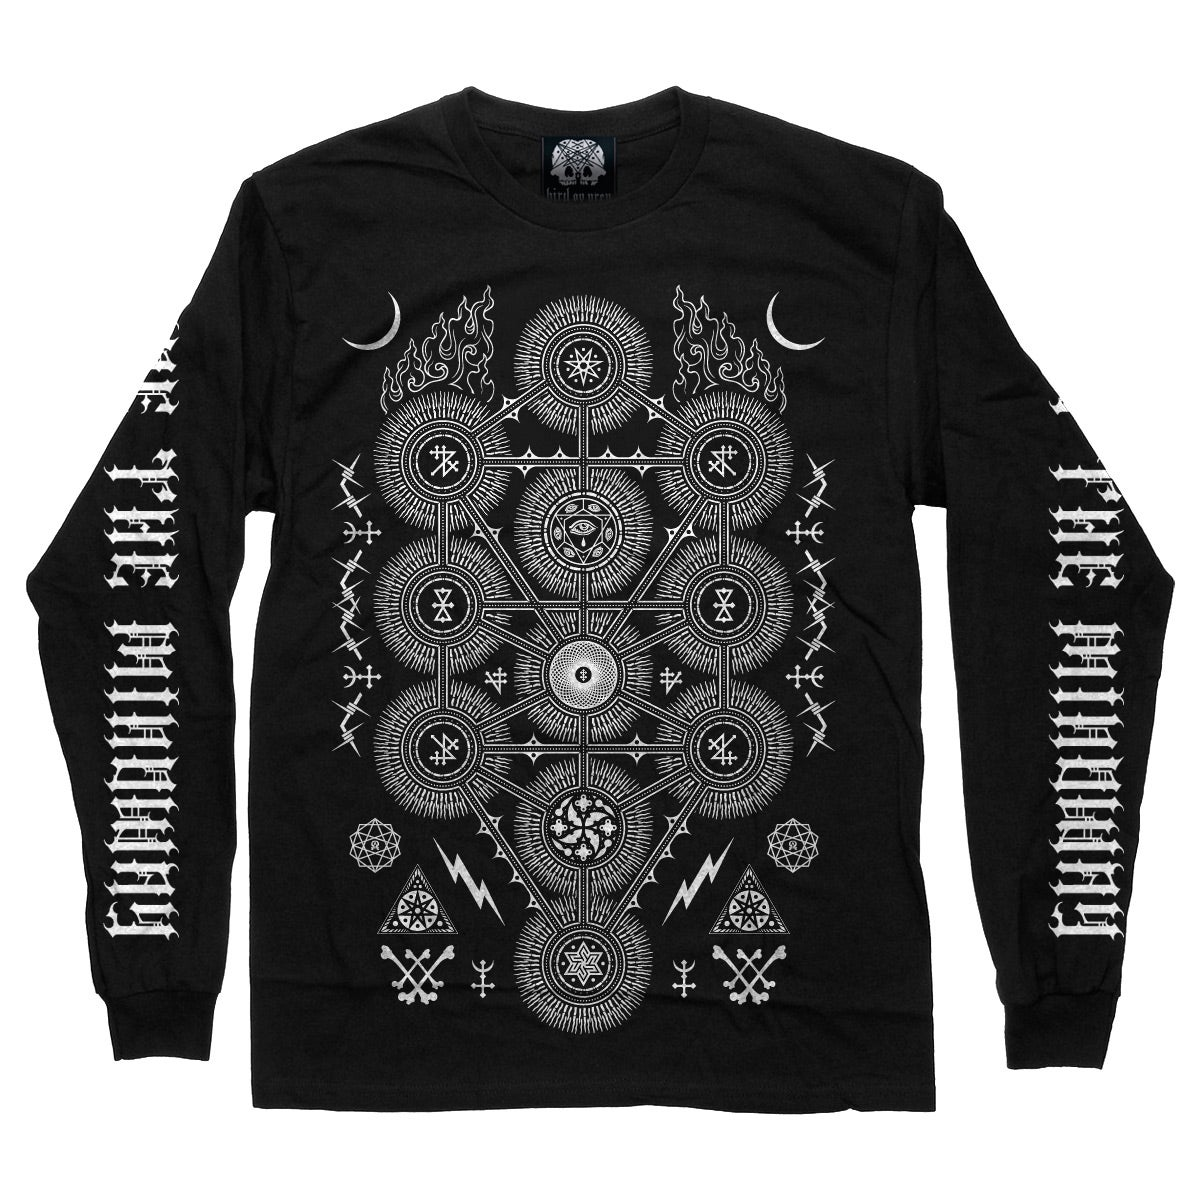 Image of Ride the Mindway LS Shirt